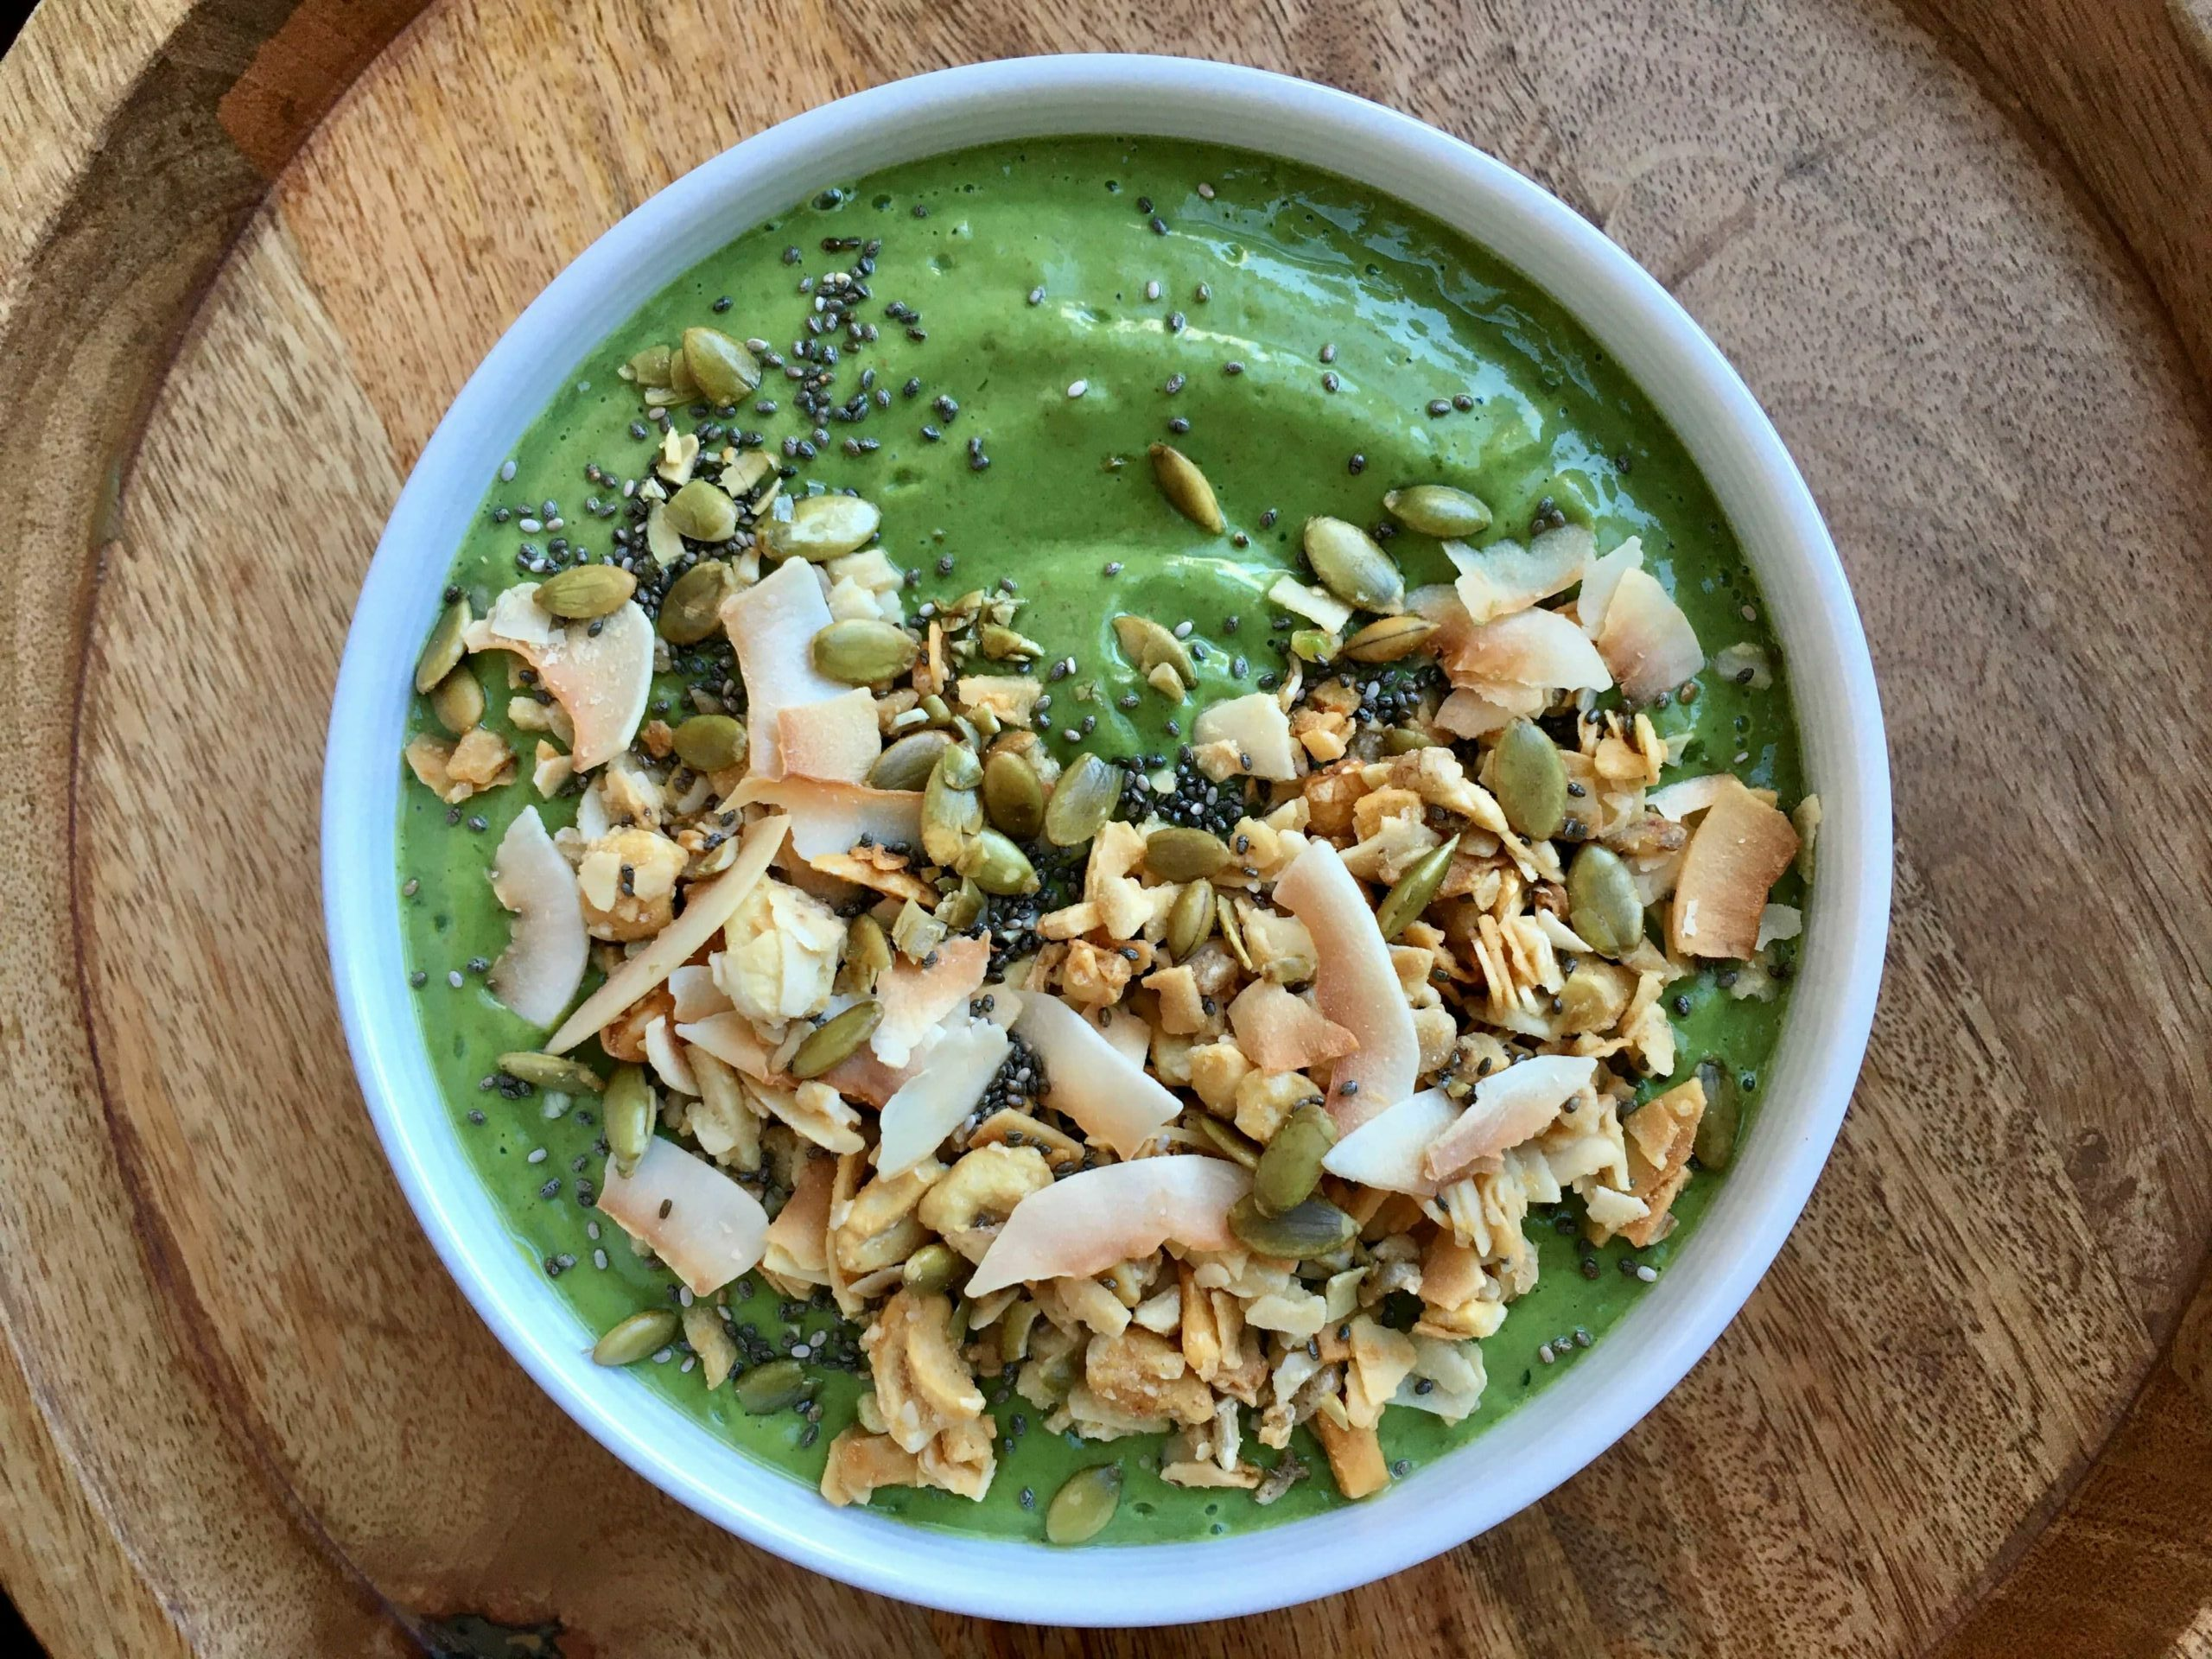 PG Recipes: Green Smoothie Bowl (With Toppings)